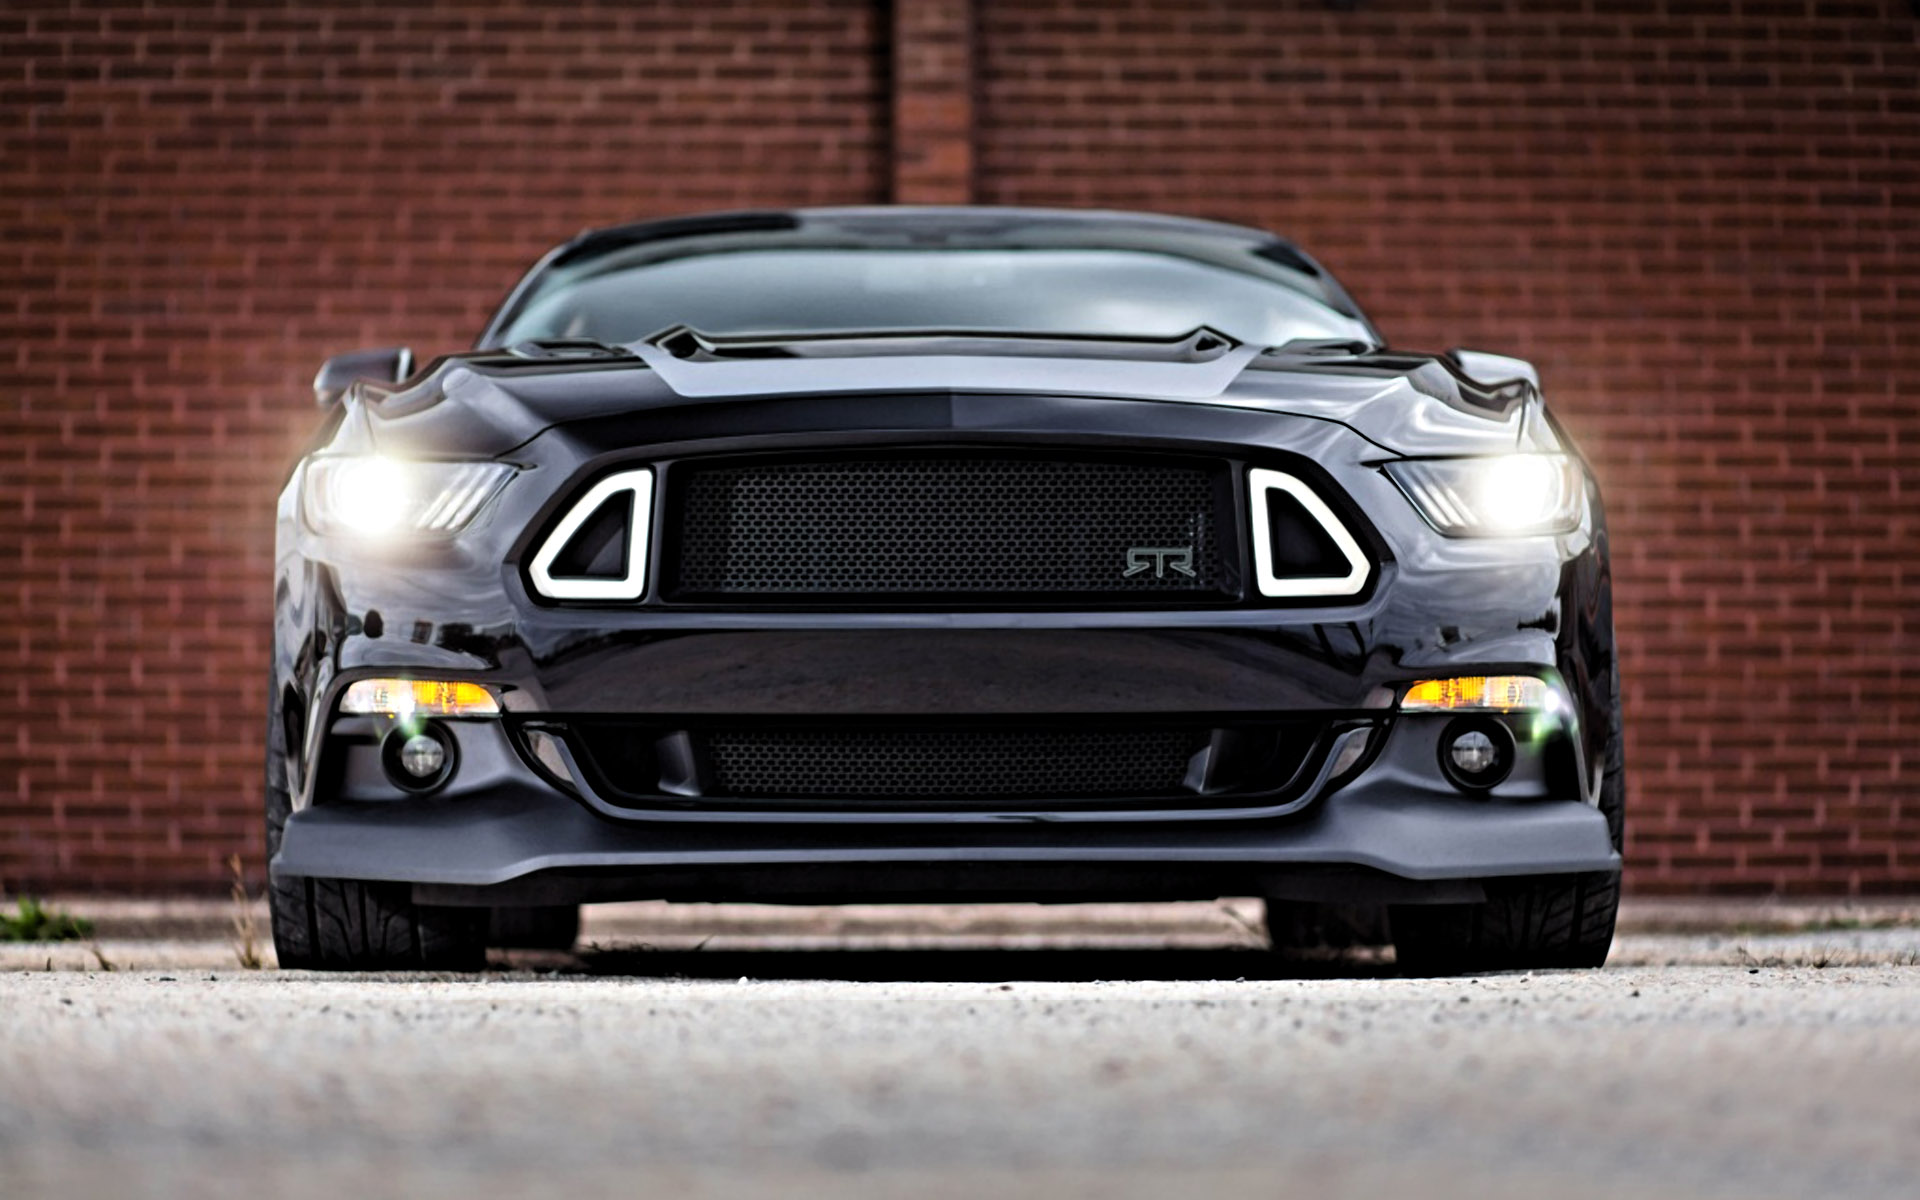 STR-ford-mustang